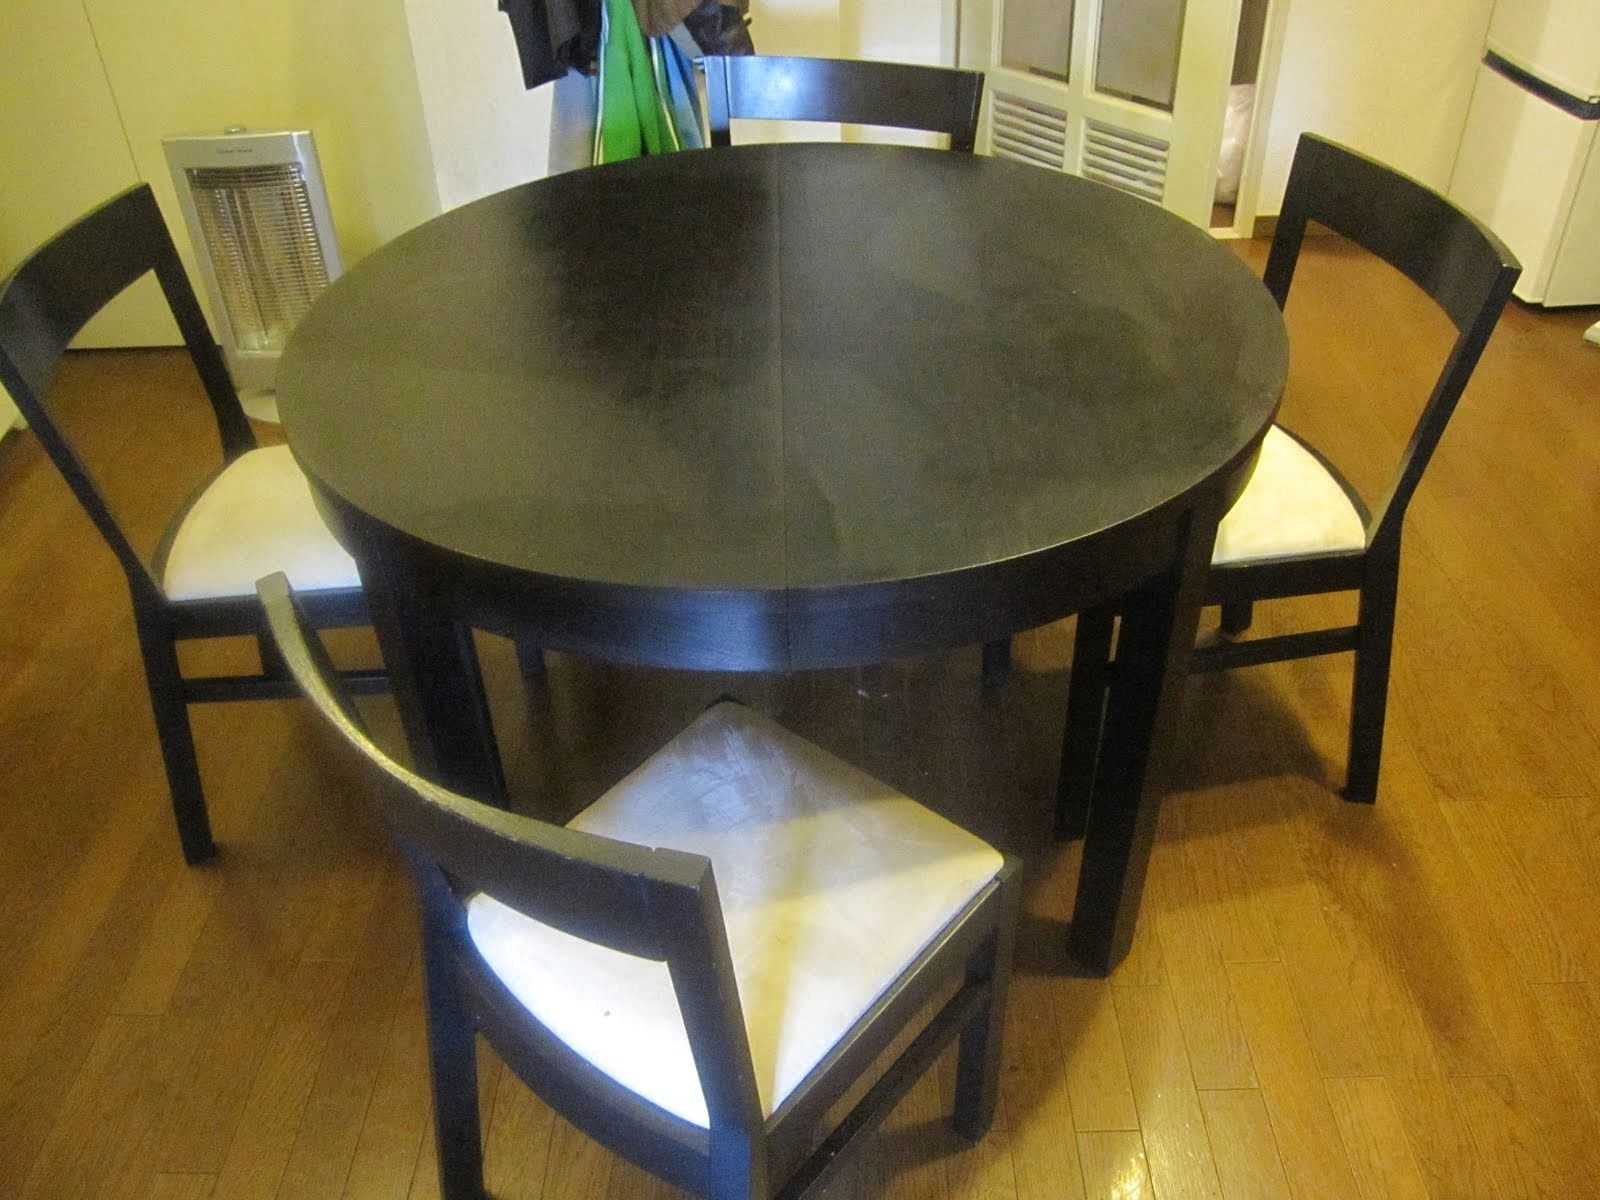 glass-round-table-ikea-is-also-a-kind-of-small-dining-tables-ikea